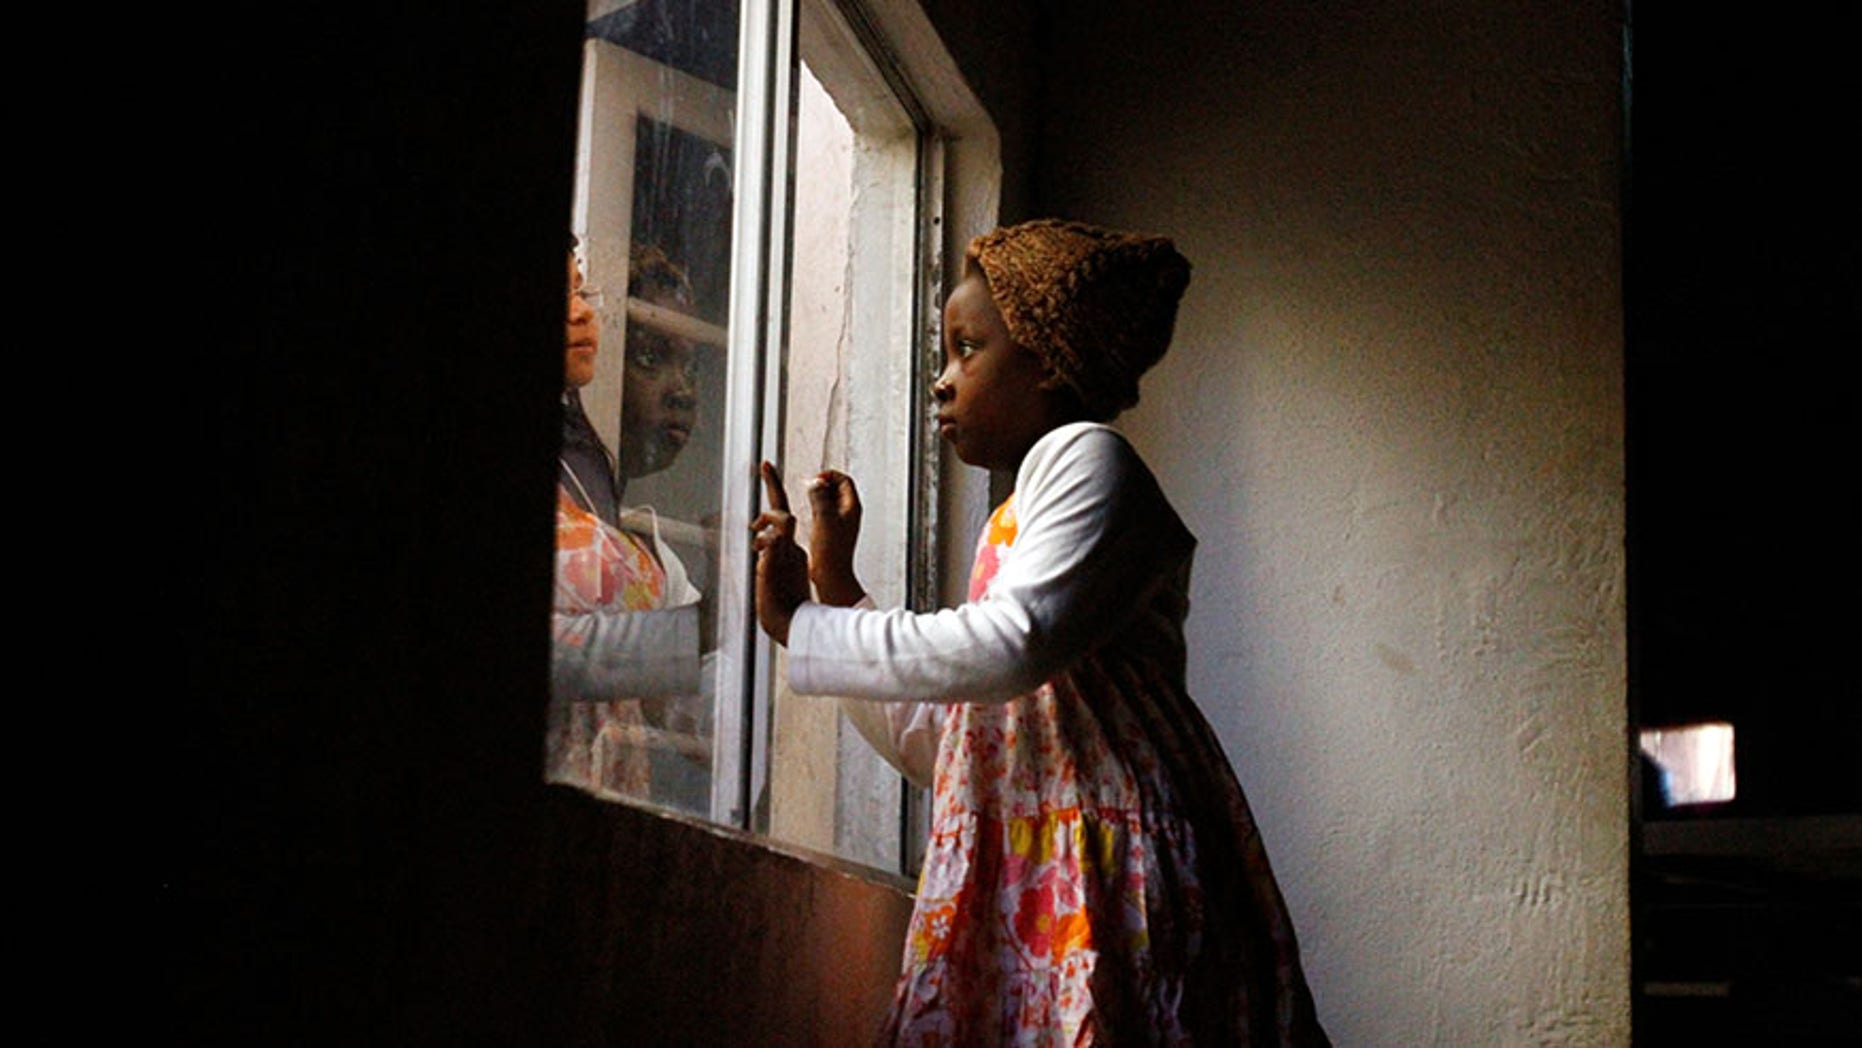 Haitian migrants talk through a window at an Evangelical Church, being used as a shelter for stranded immigrants on their way to the U.S., in Tijuana, Mexico, February 12, 2017.